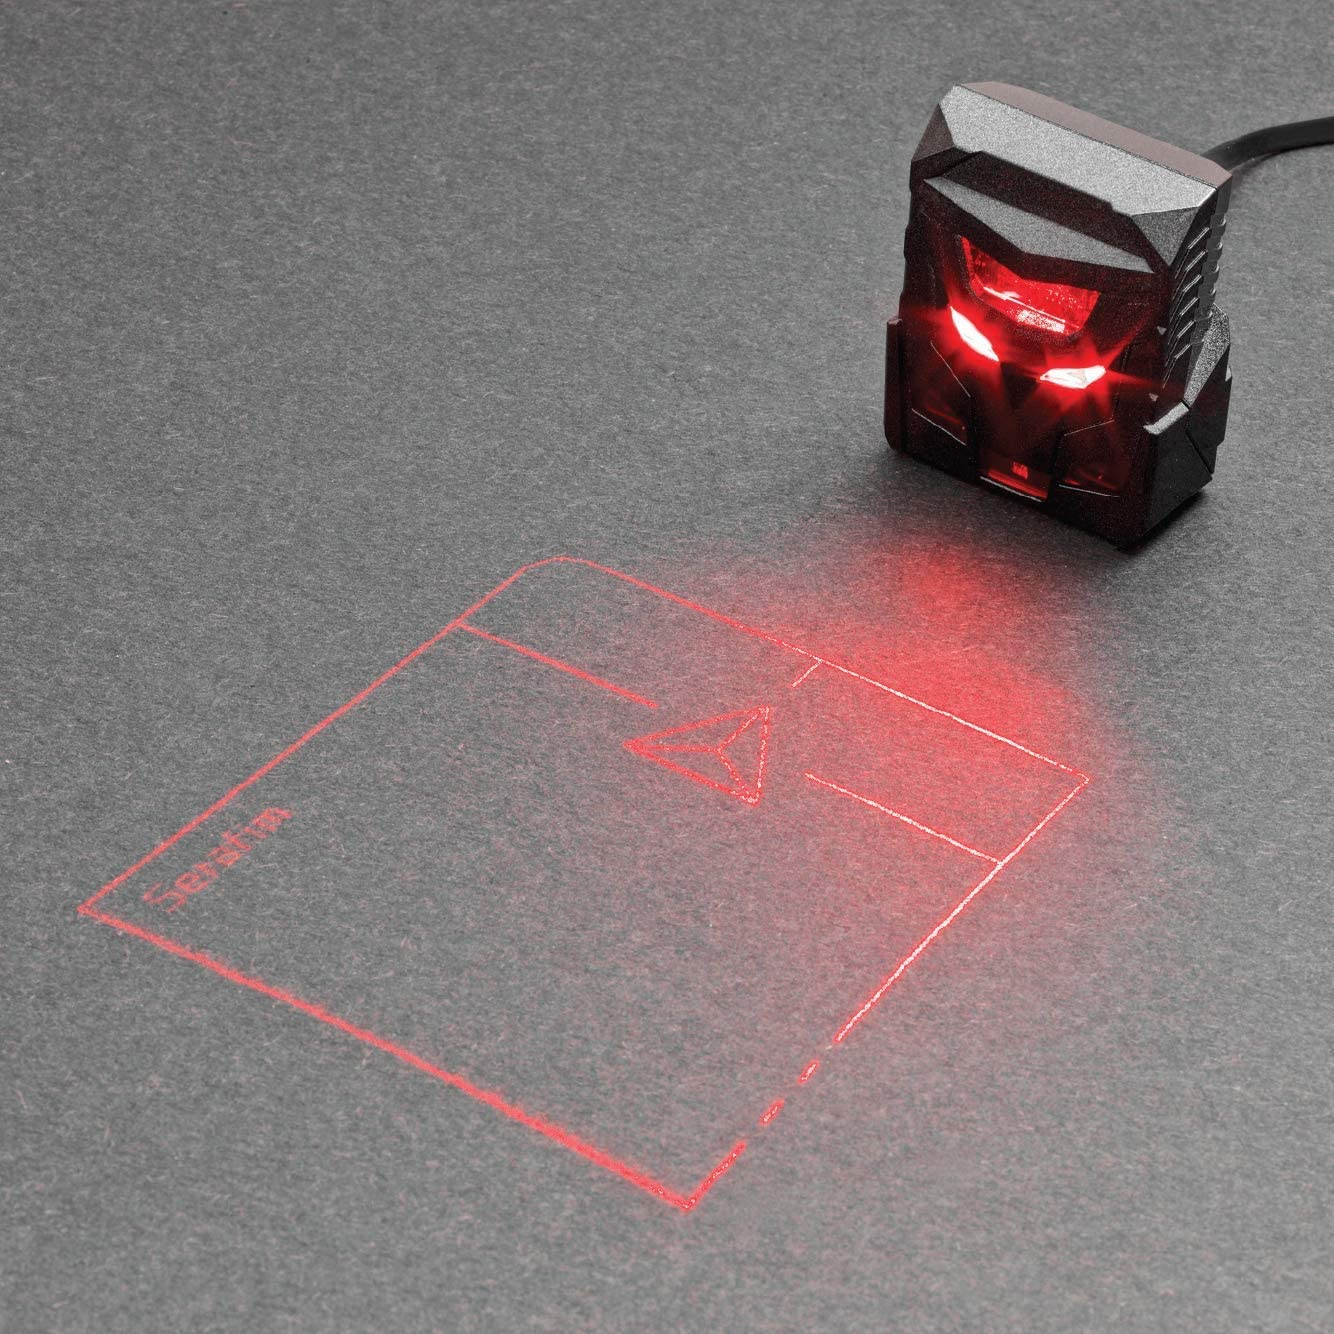 ODiN - Virtual Laser Holographic Mouse - World's First Projection Trackpad: The Ideal Complementary Accessory for Virtual Keyboards (Black)